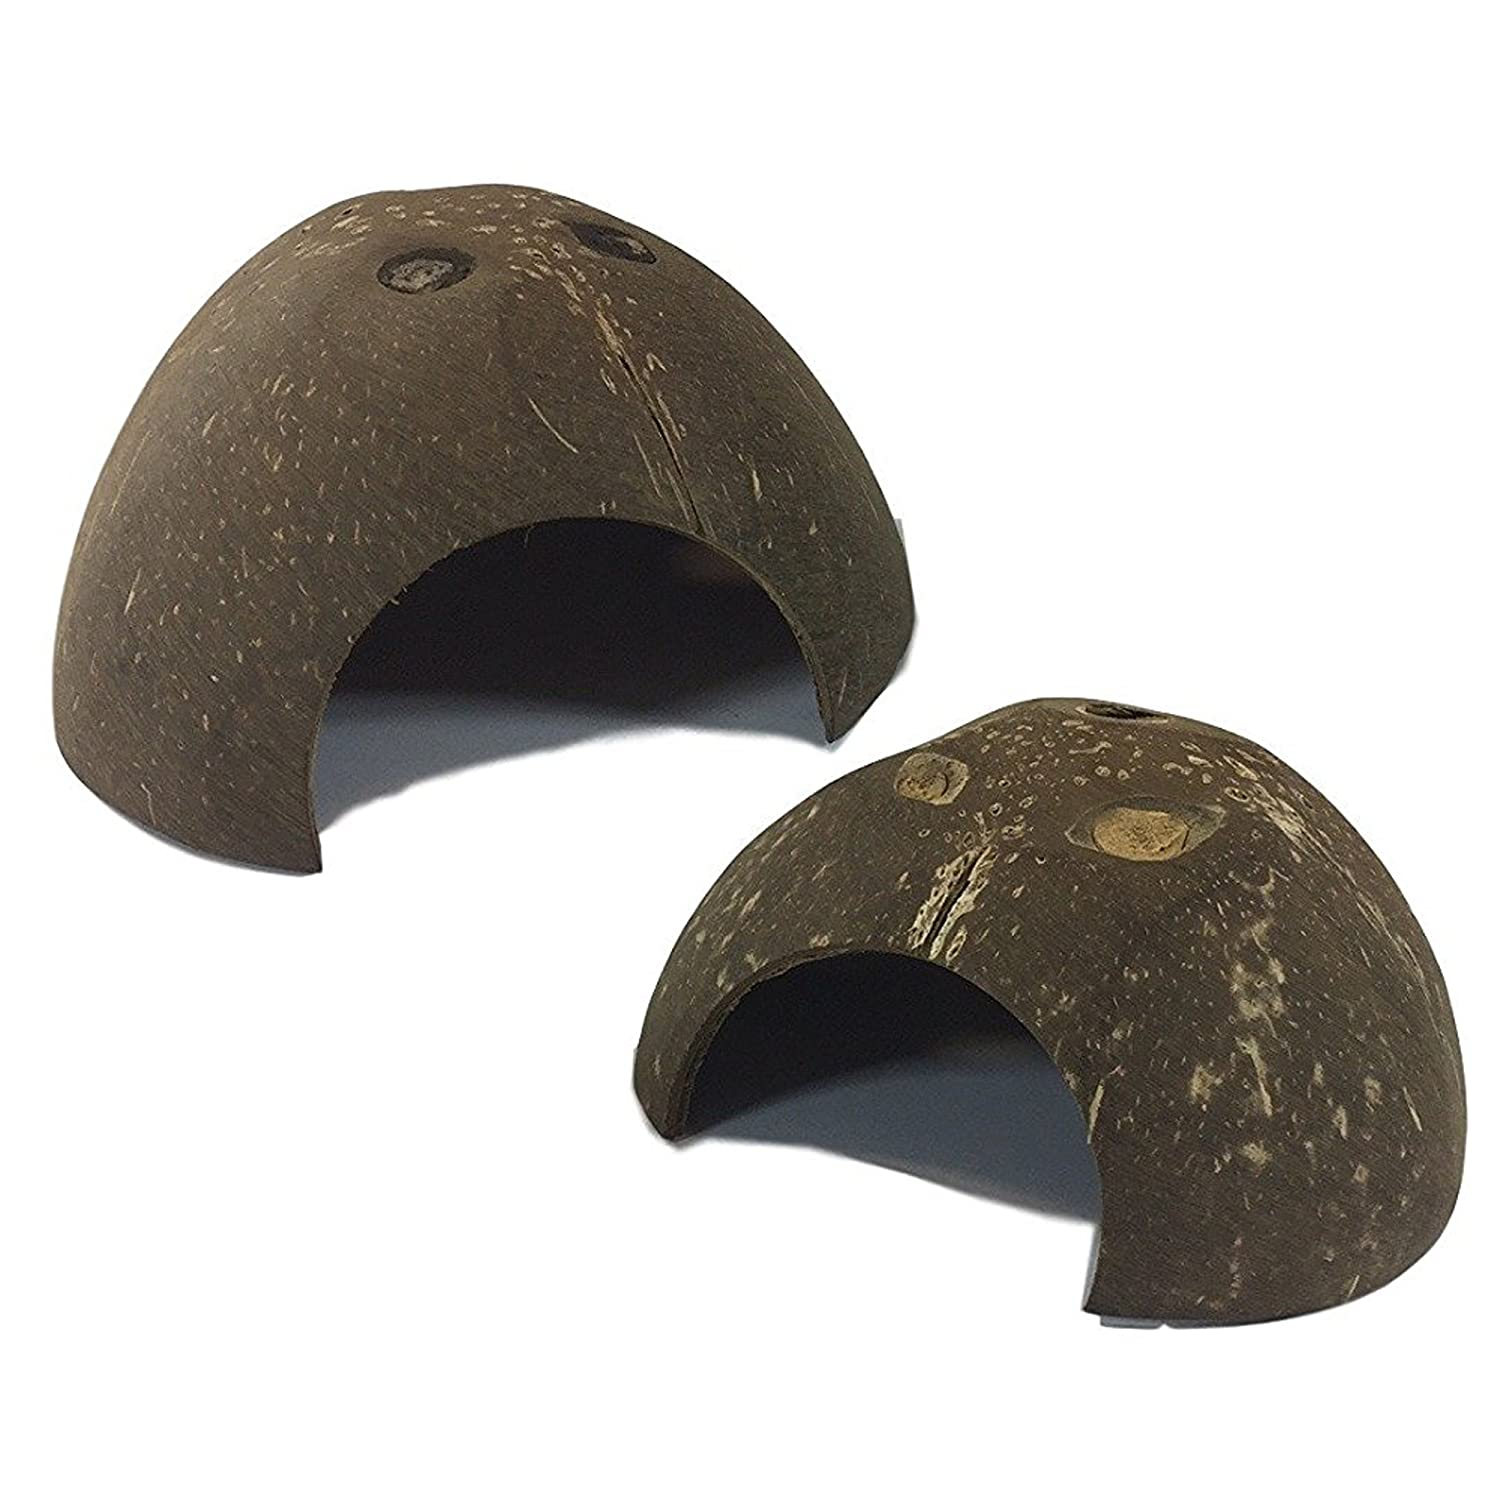 Set of 2 Coconut Shell Hut Natural Habitat Hideout for Spiders, Hermit Crabs, Reptiles, Hamsters, Fish Ark Street